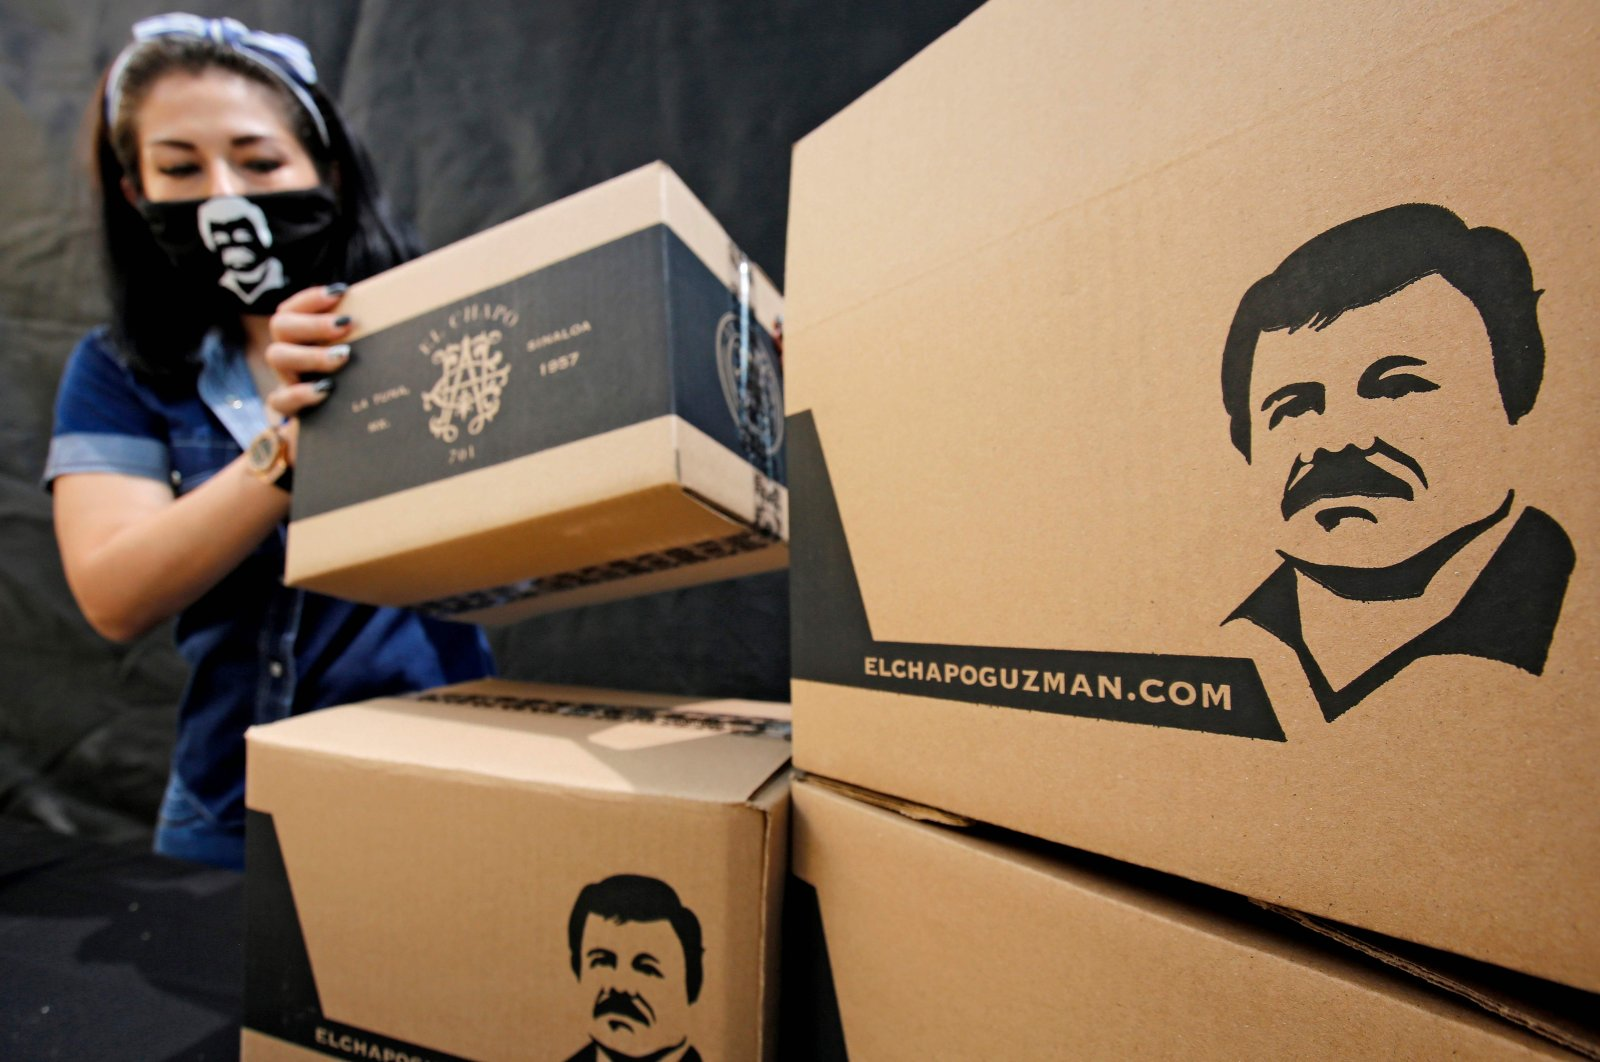 """An employee of the Alejandrina Guzman Foundation wears a face mask with the image of Mexican drug lord Joaquin """"El Chapo"""" Guzman -Alejandrina's father- as she arranges boxes with basic goods to be donated to people in need amid the new coronavirus pandemic in Guadalajara, Mexico, on April 17, 2020. (AFP Photo)"""